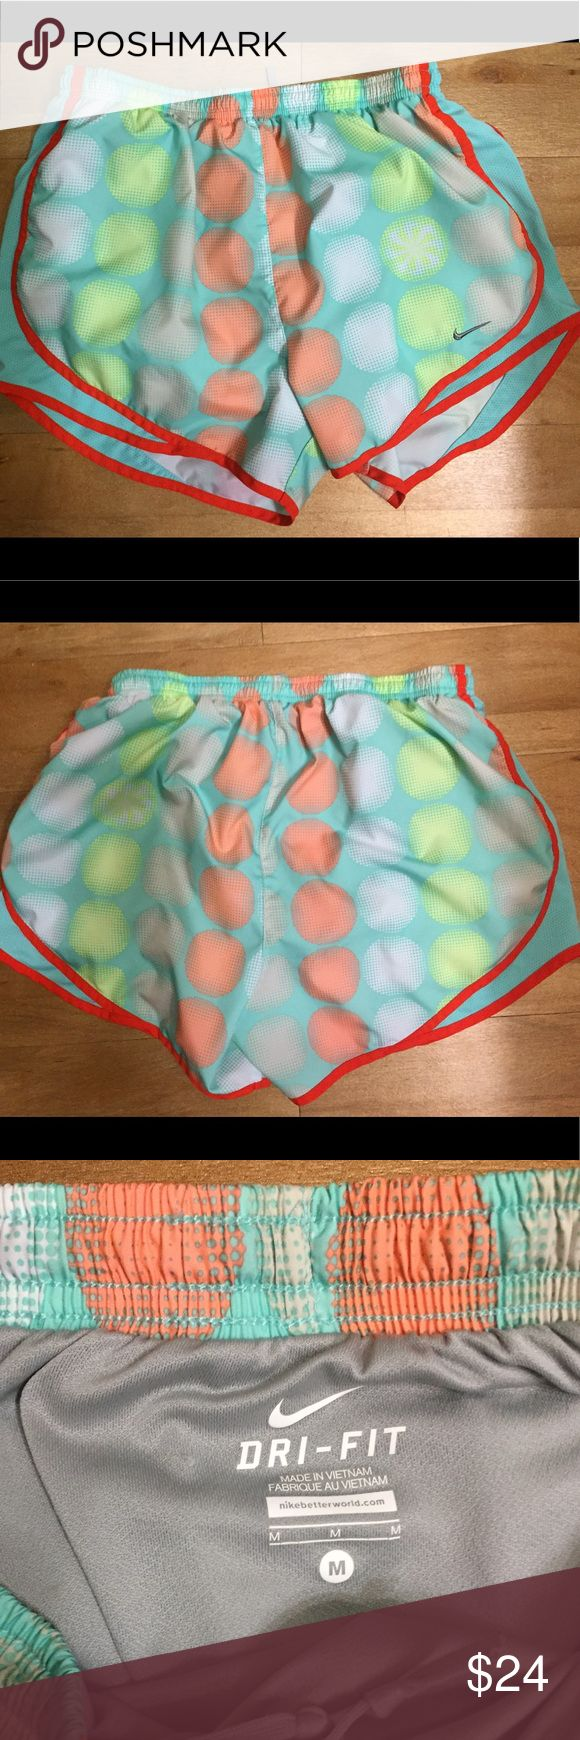 Nike Tempo Running Shorts polka dot medium Nike Tempo Running Shorts in medium. Turquoise shorts with white, gray, peach, and mint green polka dots along with red trim. Perfect condition. Like new. Nike Shorts